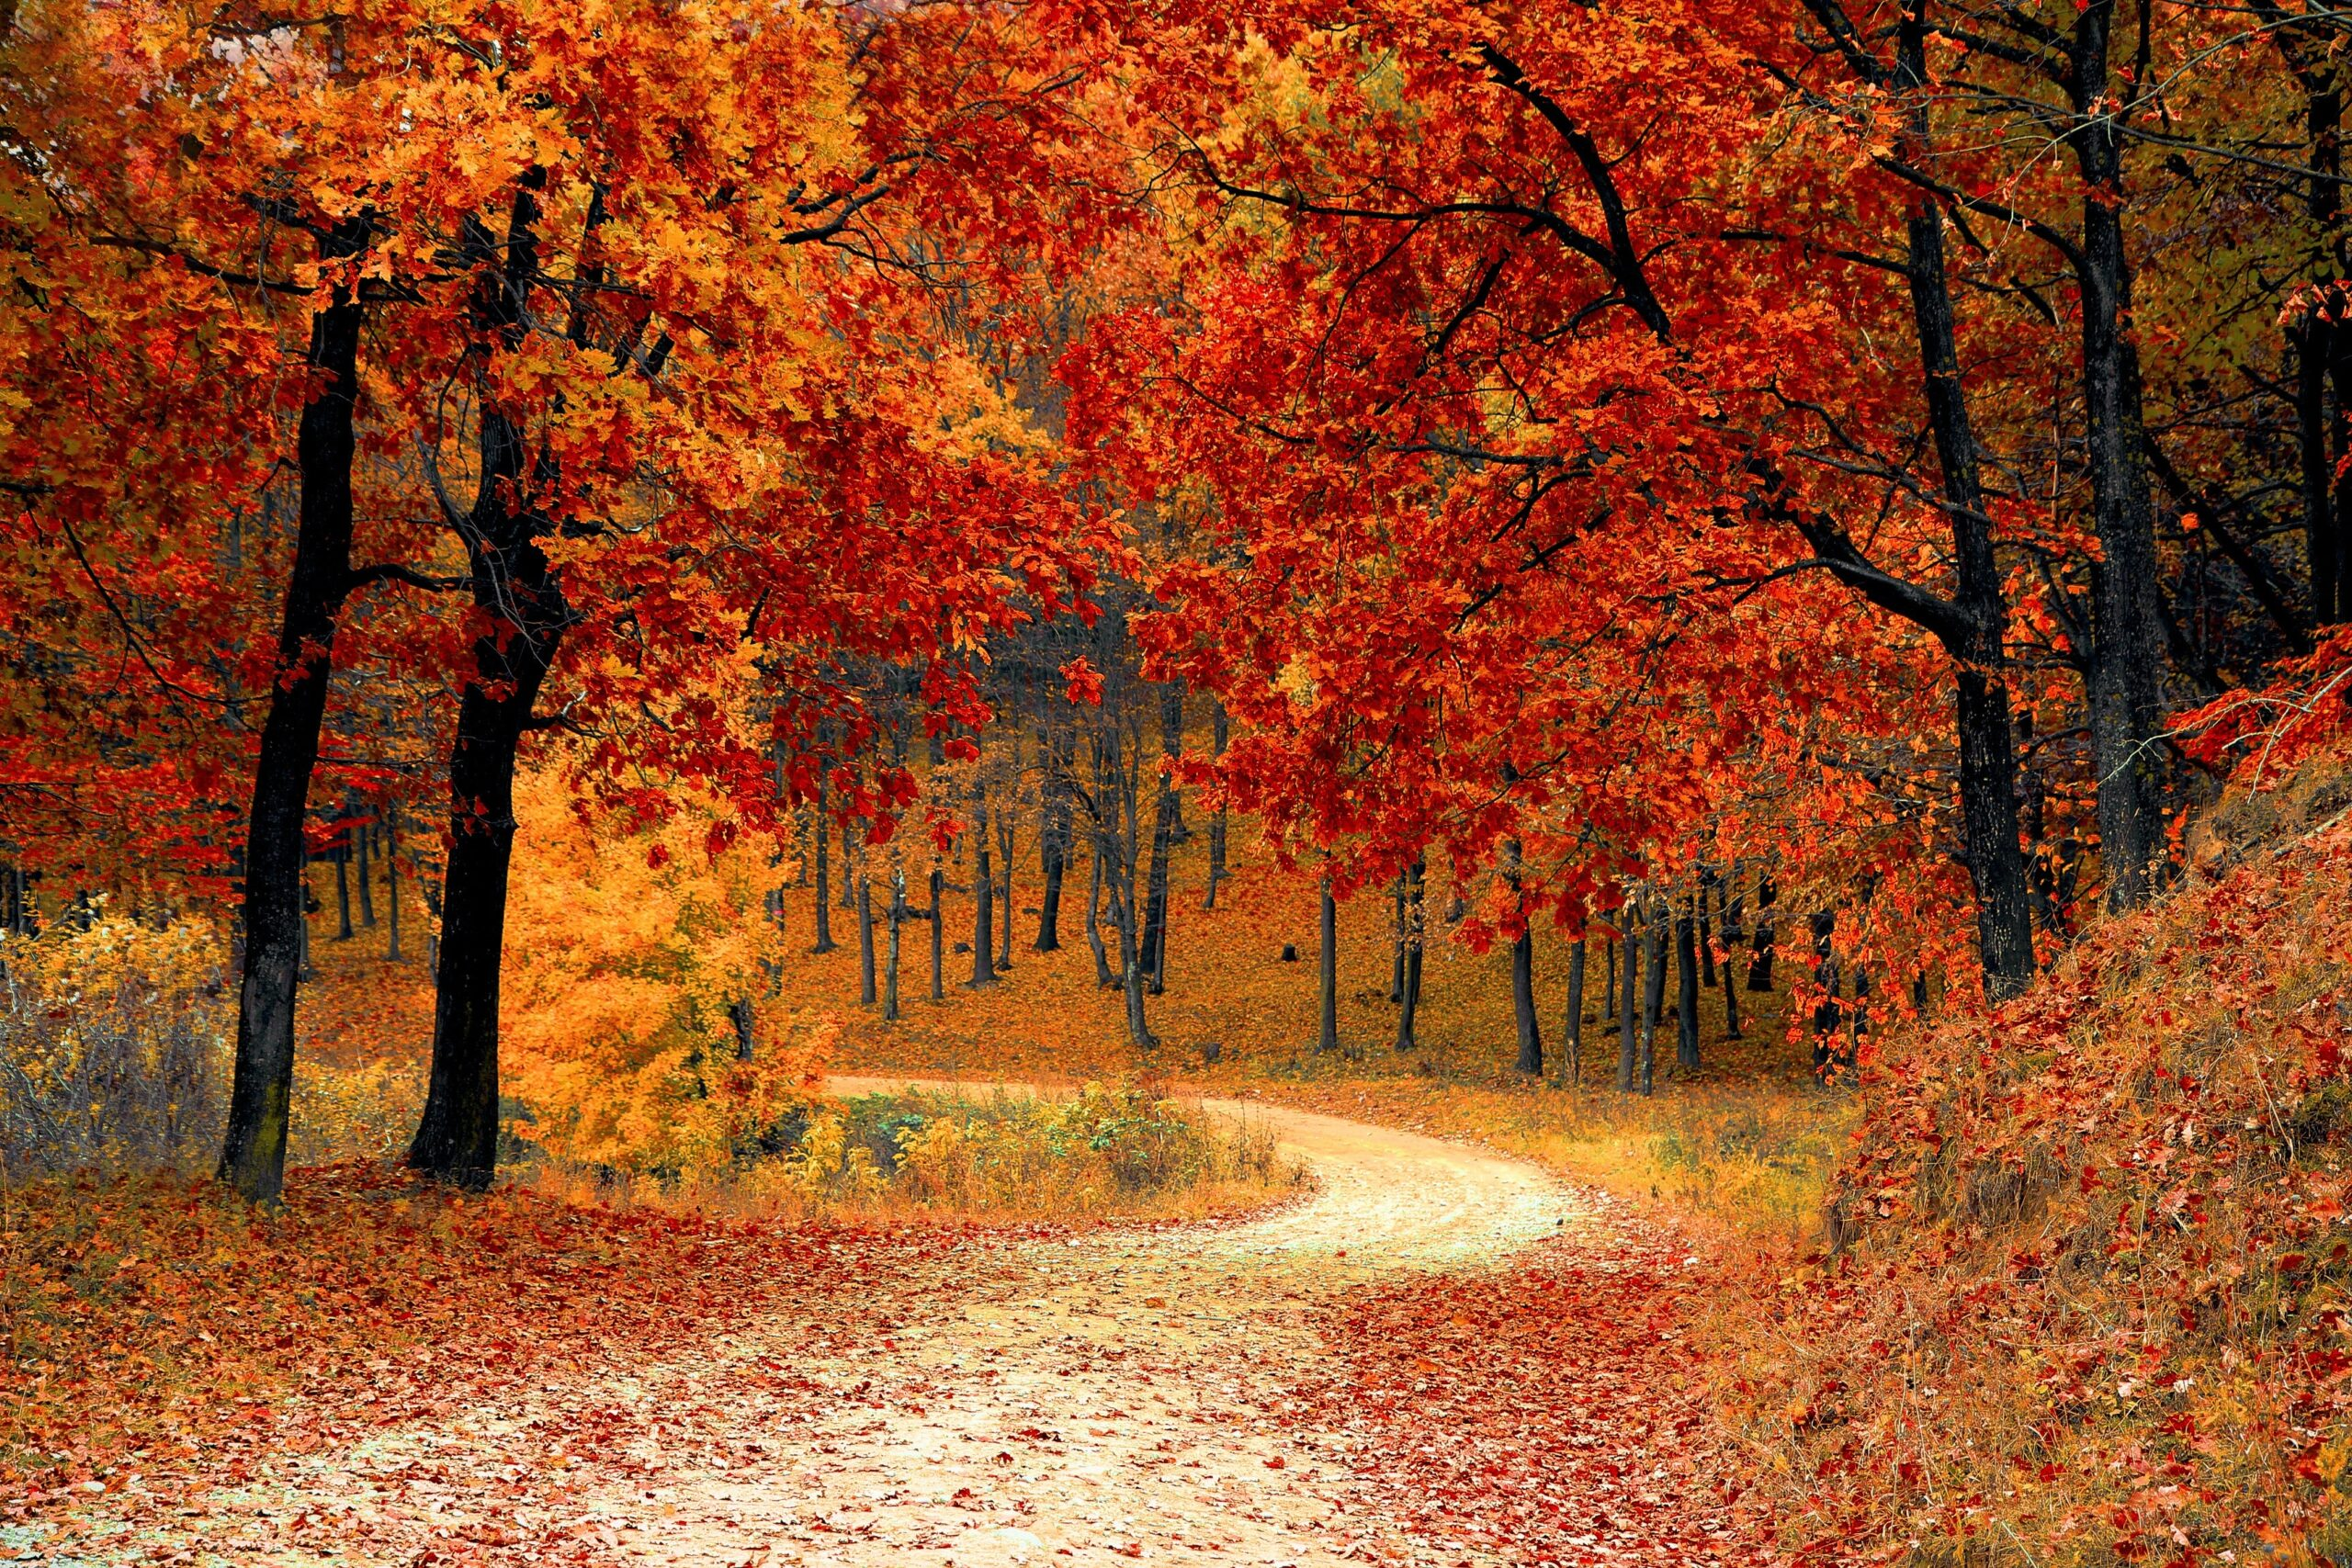 Fall colored trees and leaves line a gravel walking path.